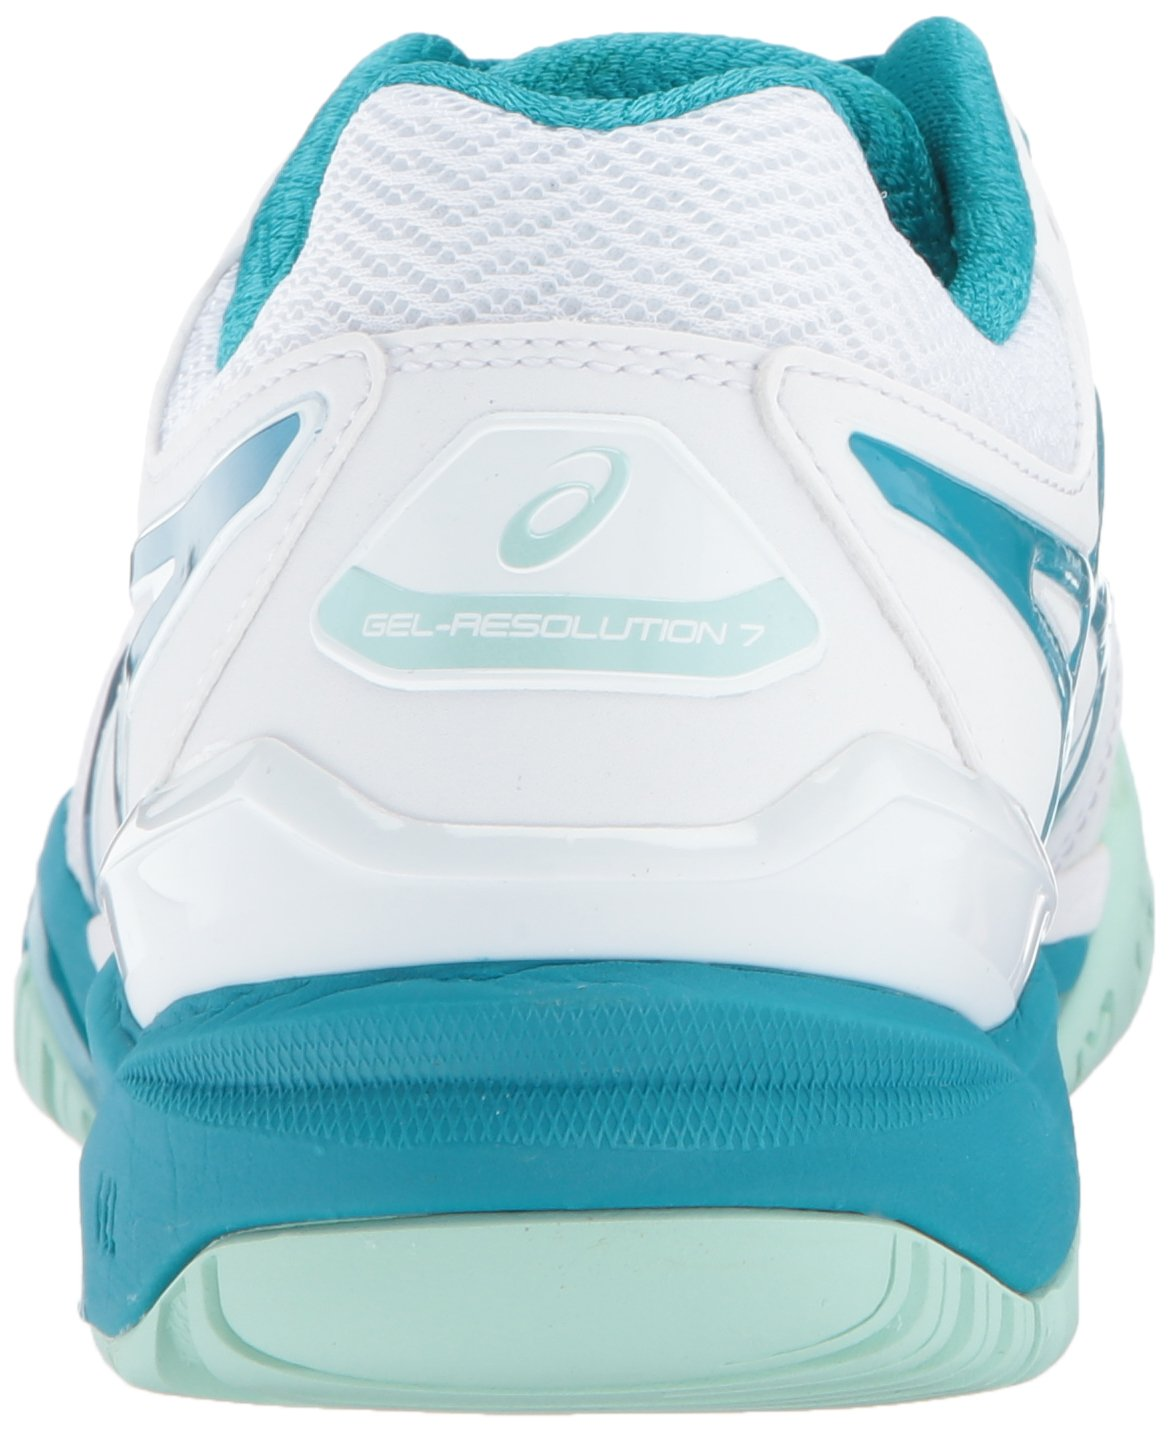 ASICS Women's Gel-Resolution 7 B(M) Tennis Shoe B01MZ6VMYQ 6 B(M) 7 US|White/Arctic Aqua/Glacier Sea 97b0ee